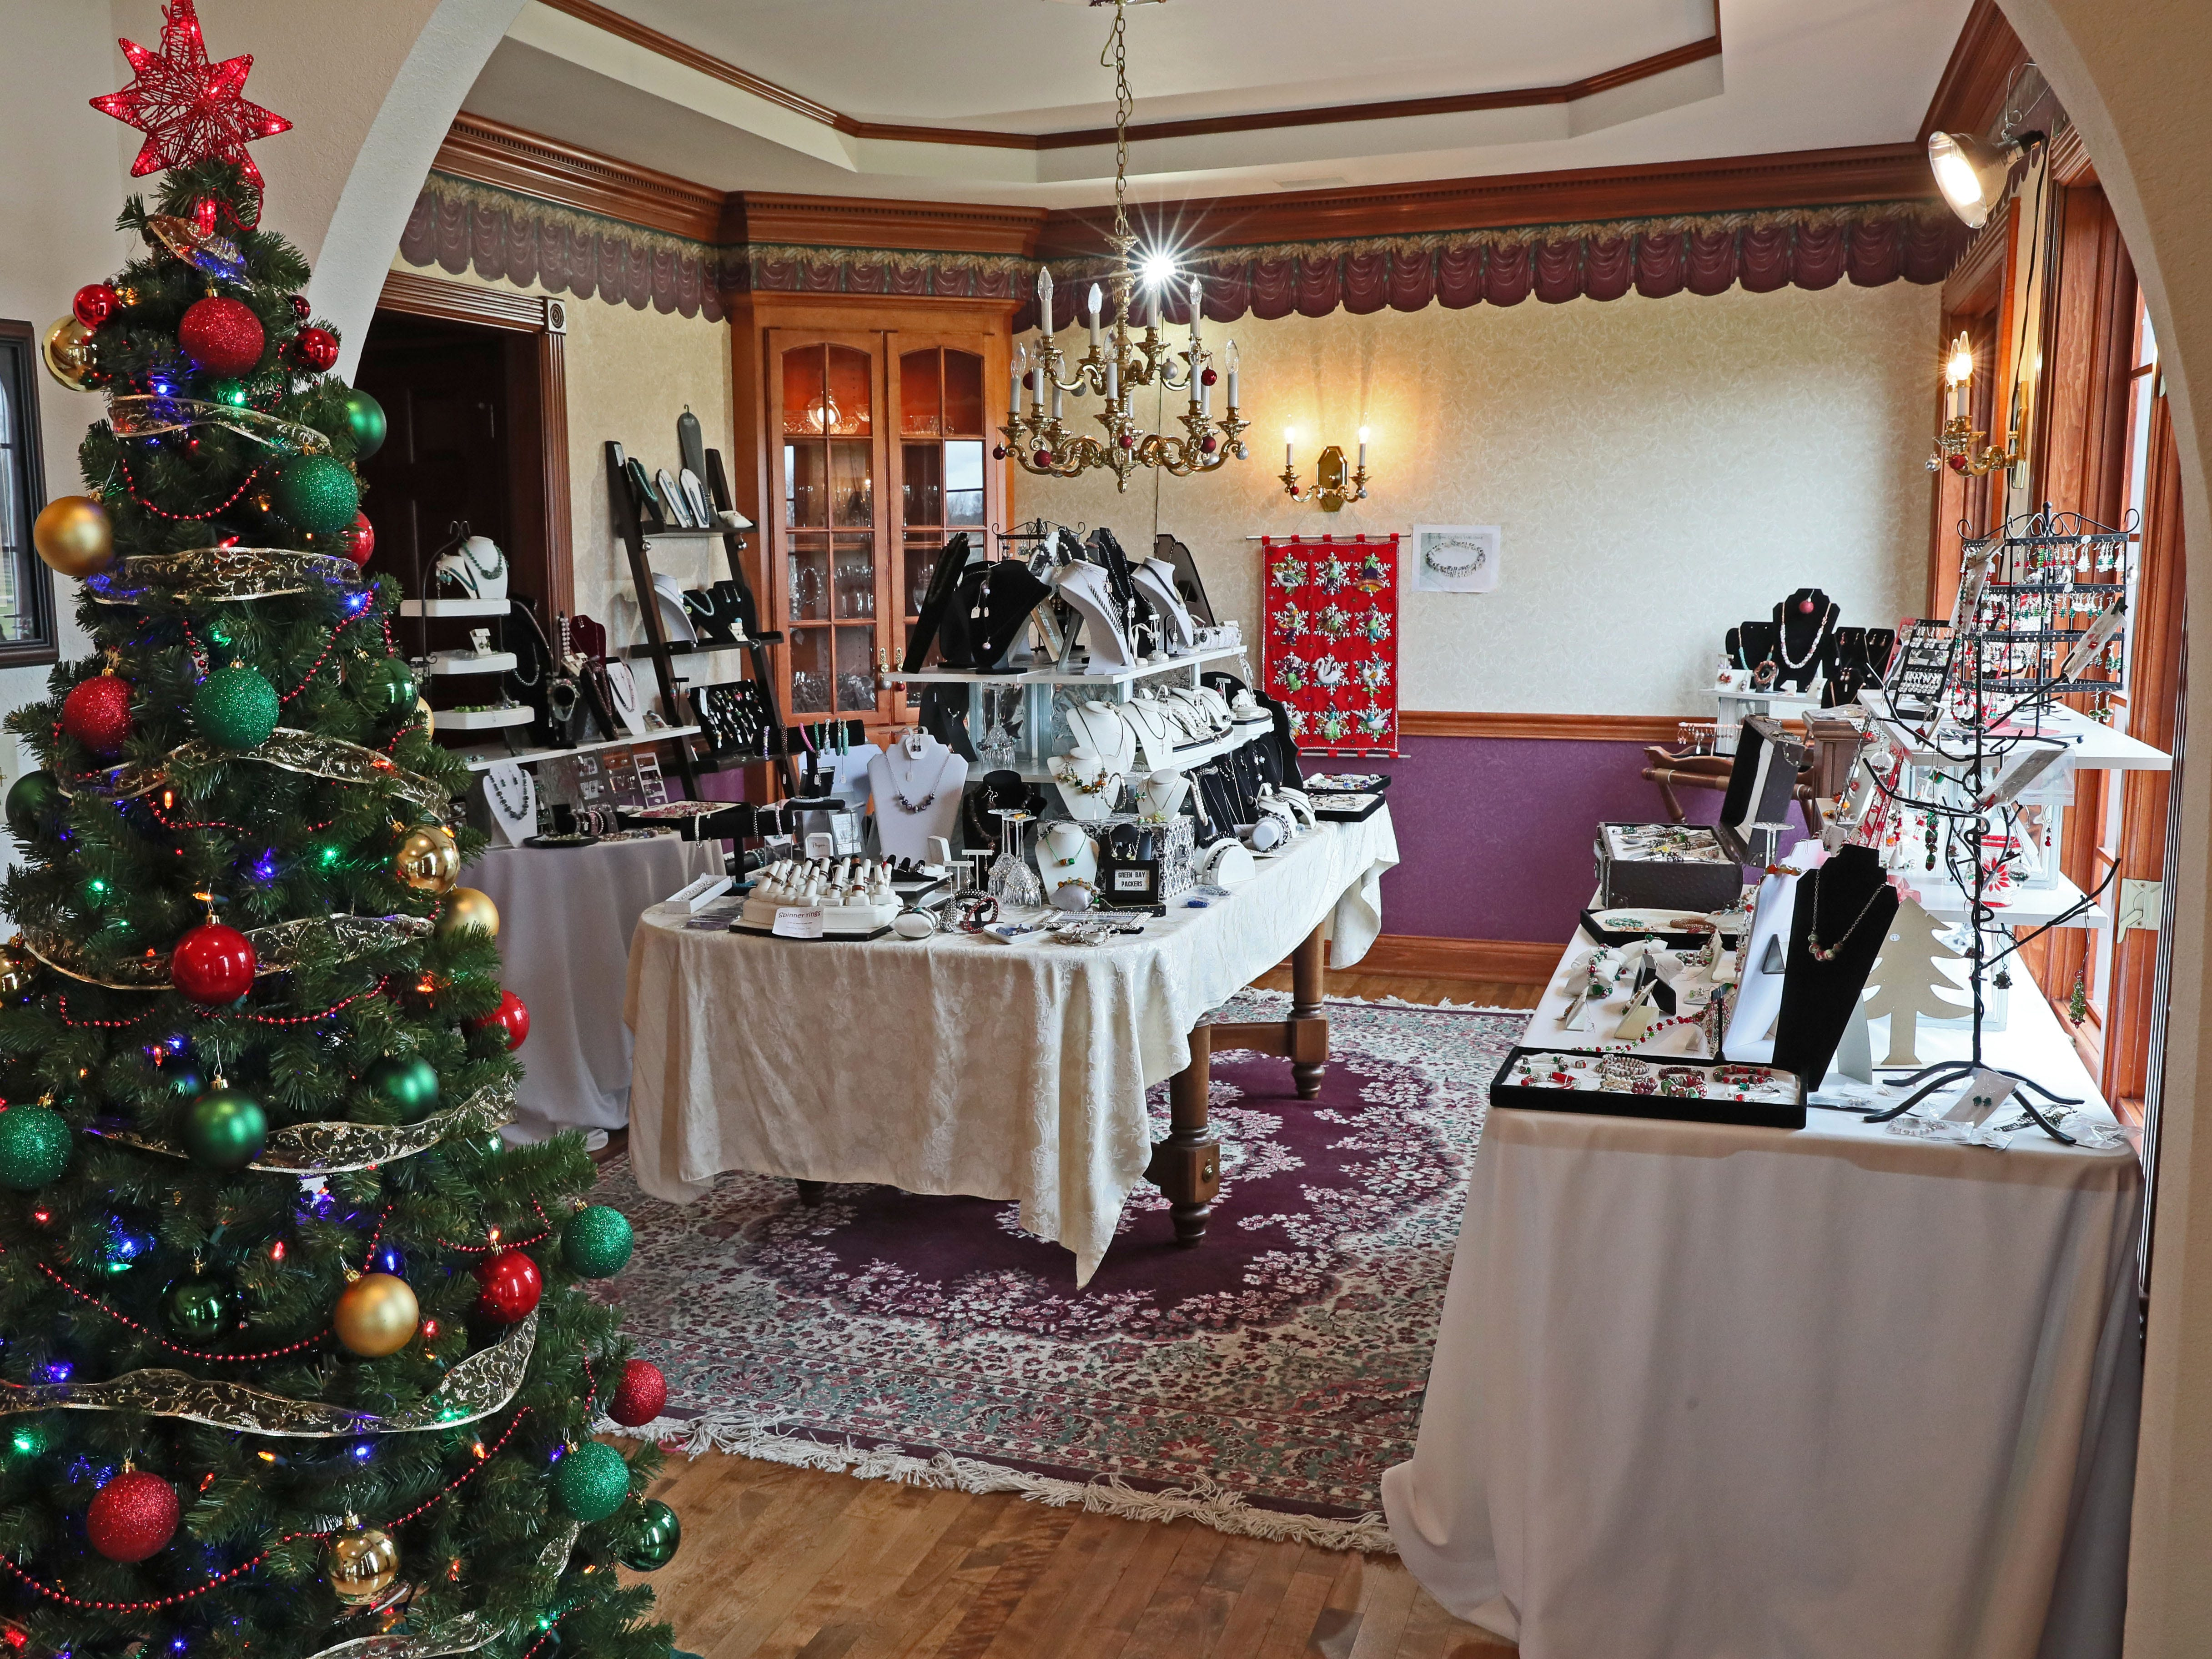 Janet Libbey uses this room to display the glass beads and jewelry she makes and sells.